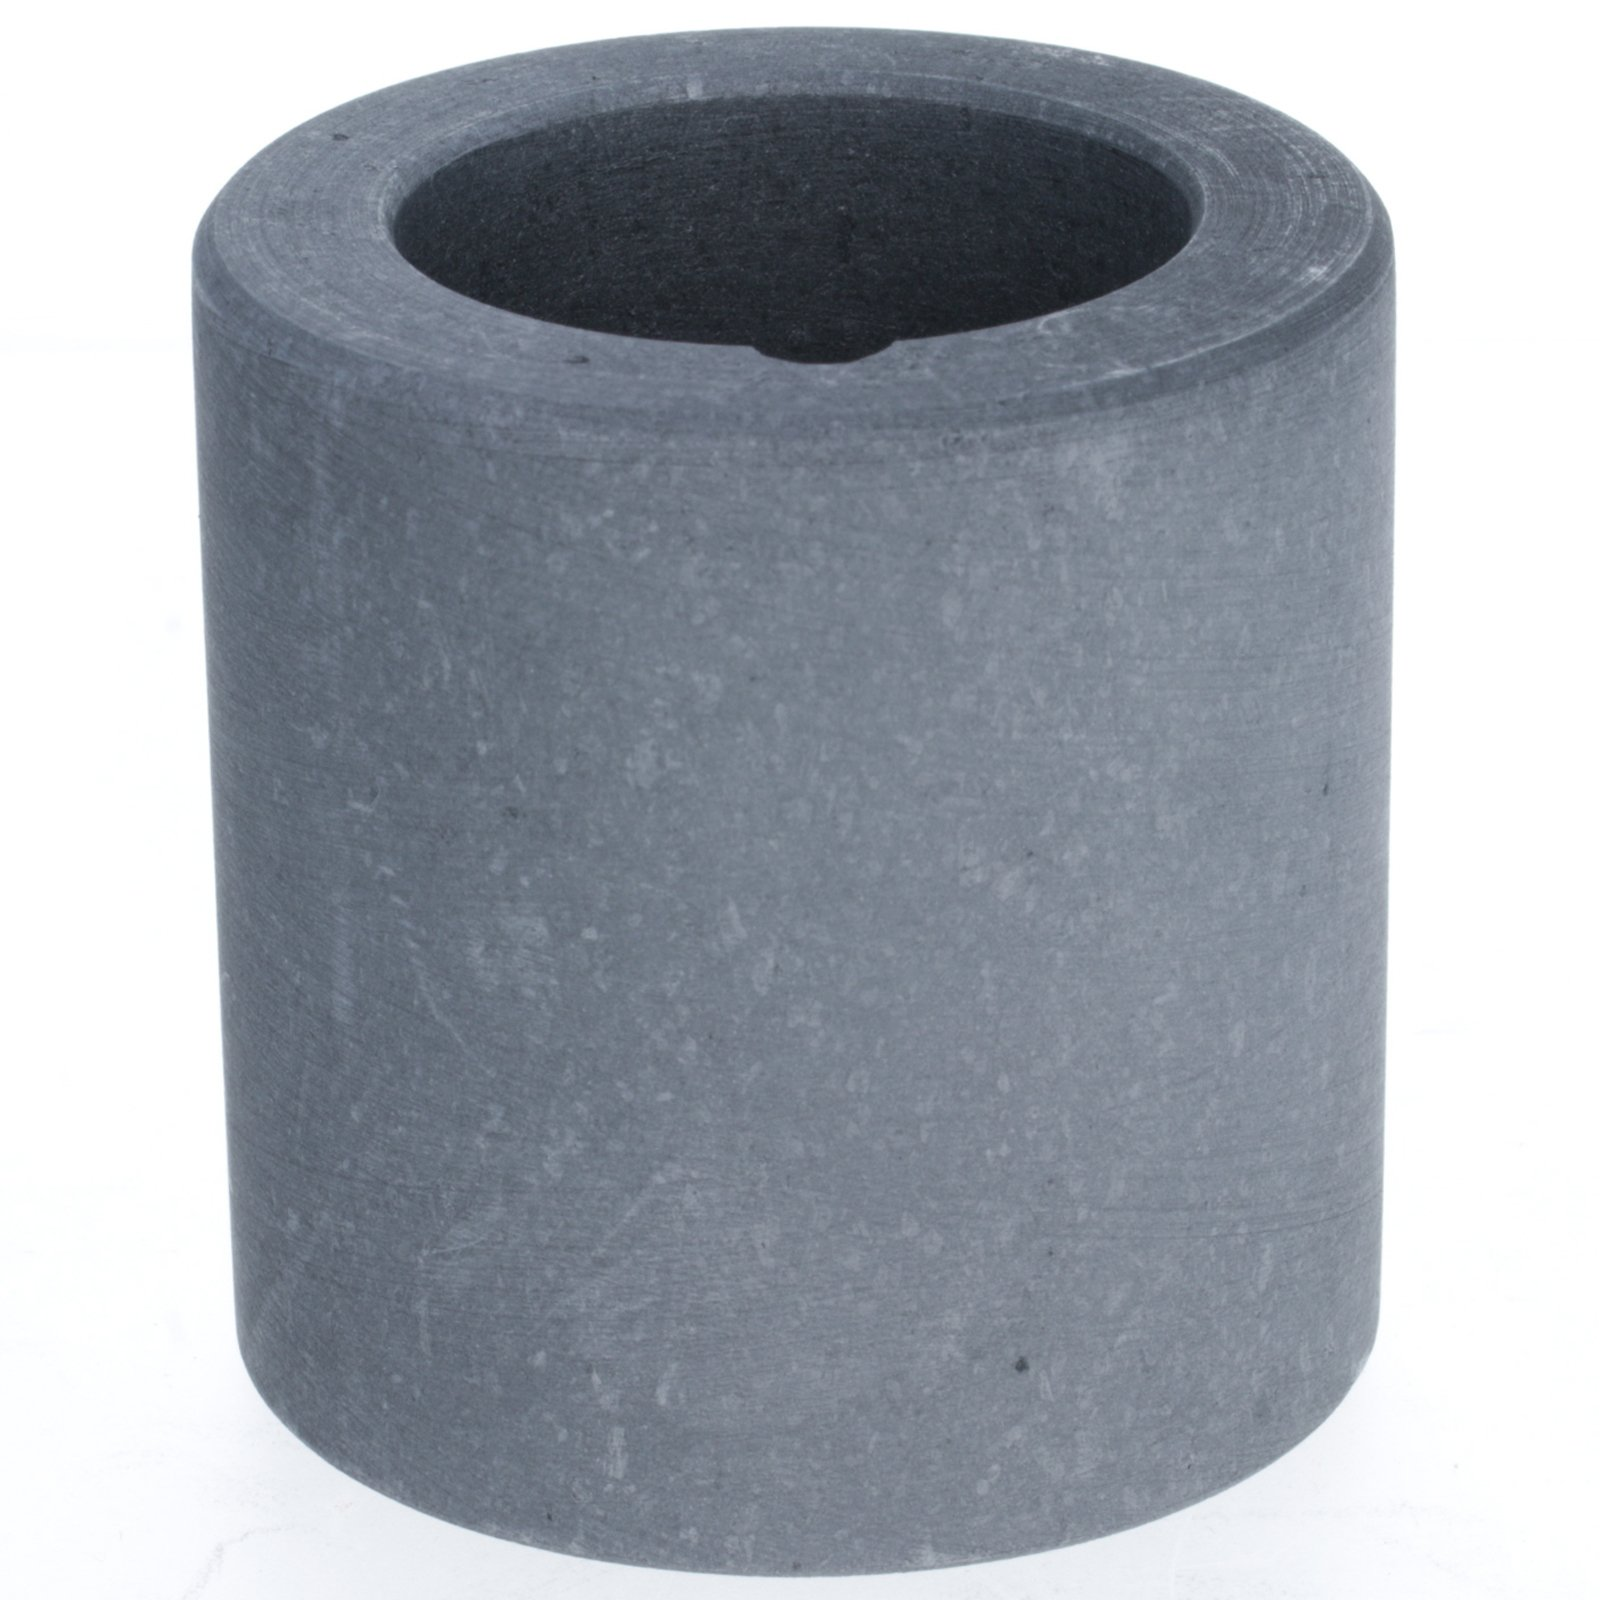 Universal Tool Graphite Crucible for Melting Gold and Silver 2.1 by 2.1 Inch